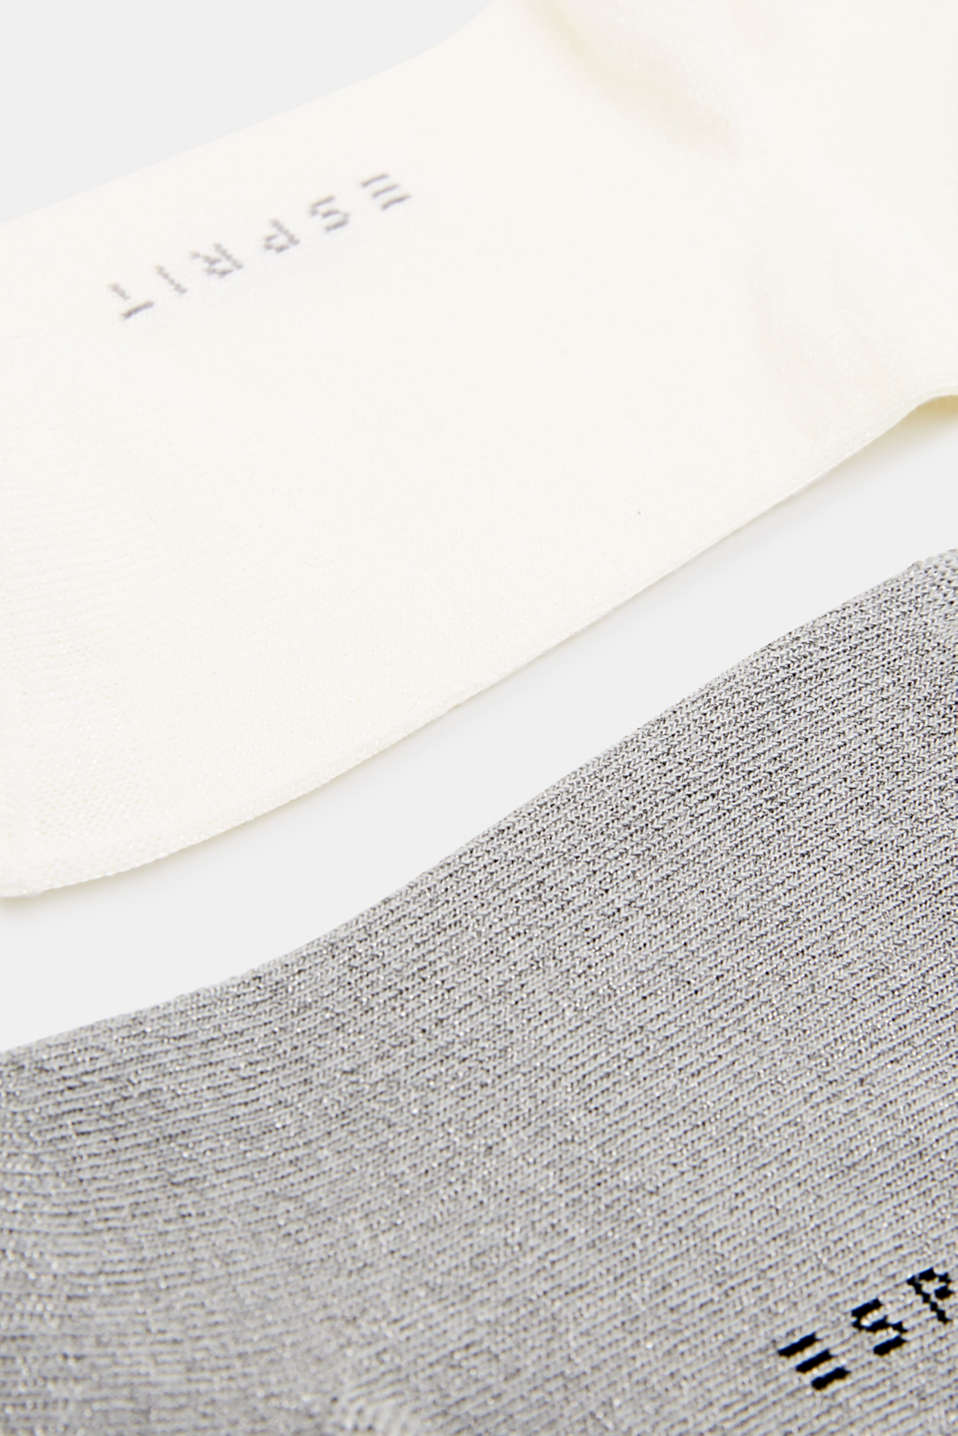 In a double pack: Trainer socks with glitter, SORTIMENT, detail image number 1